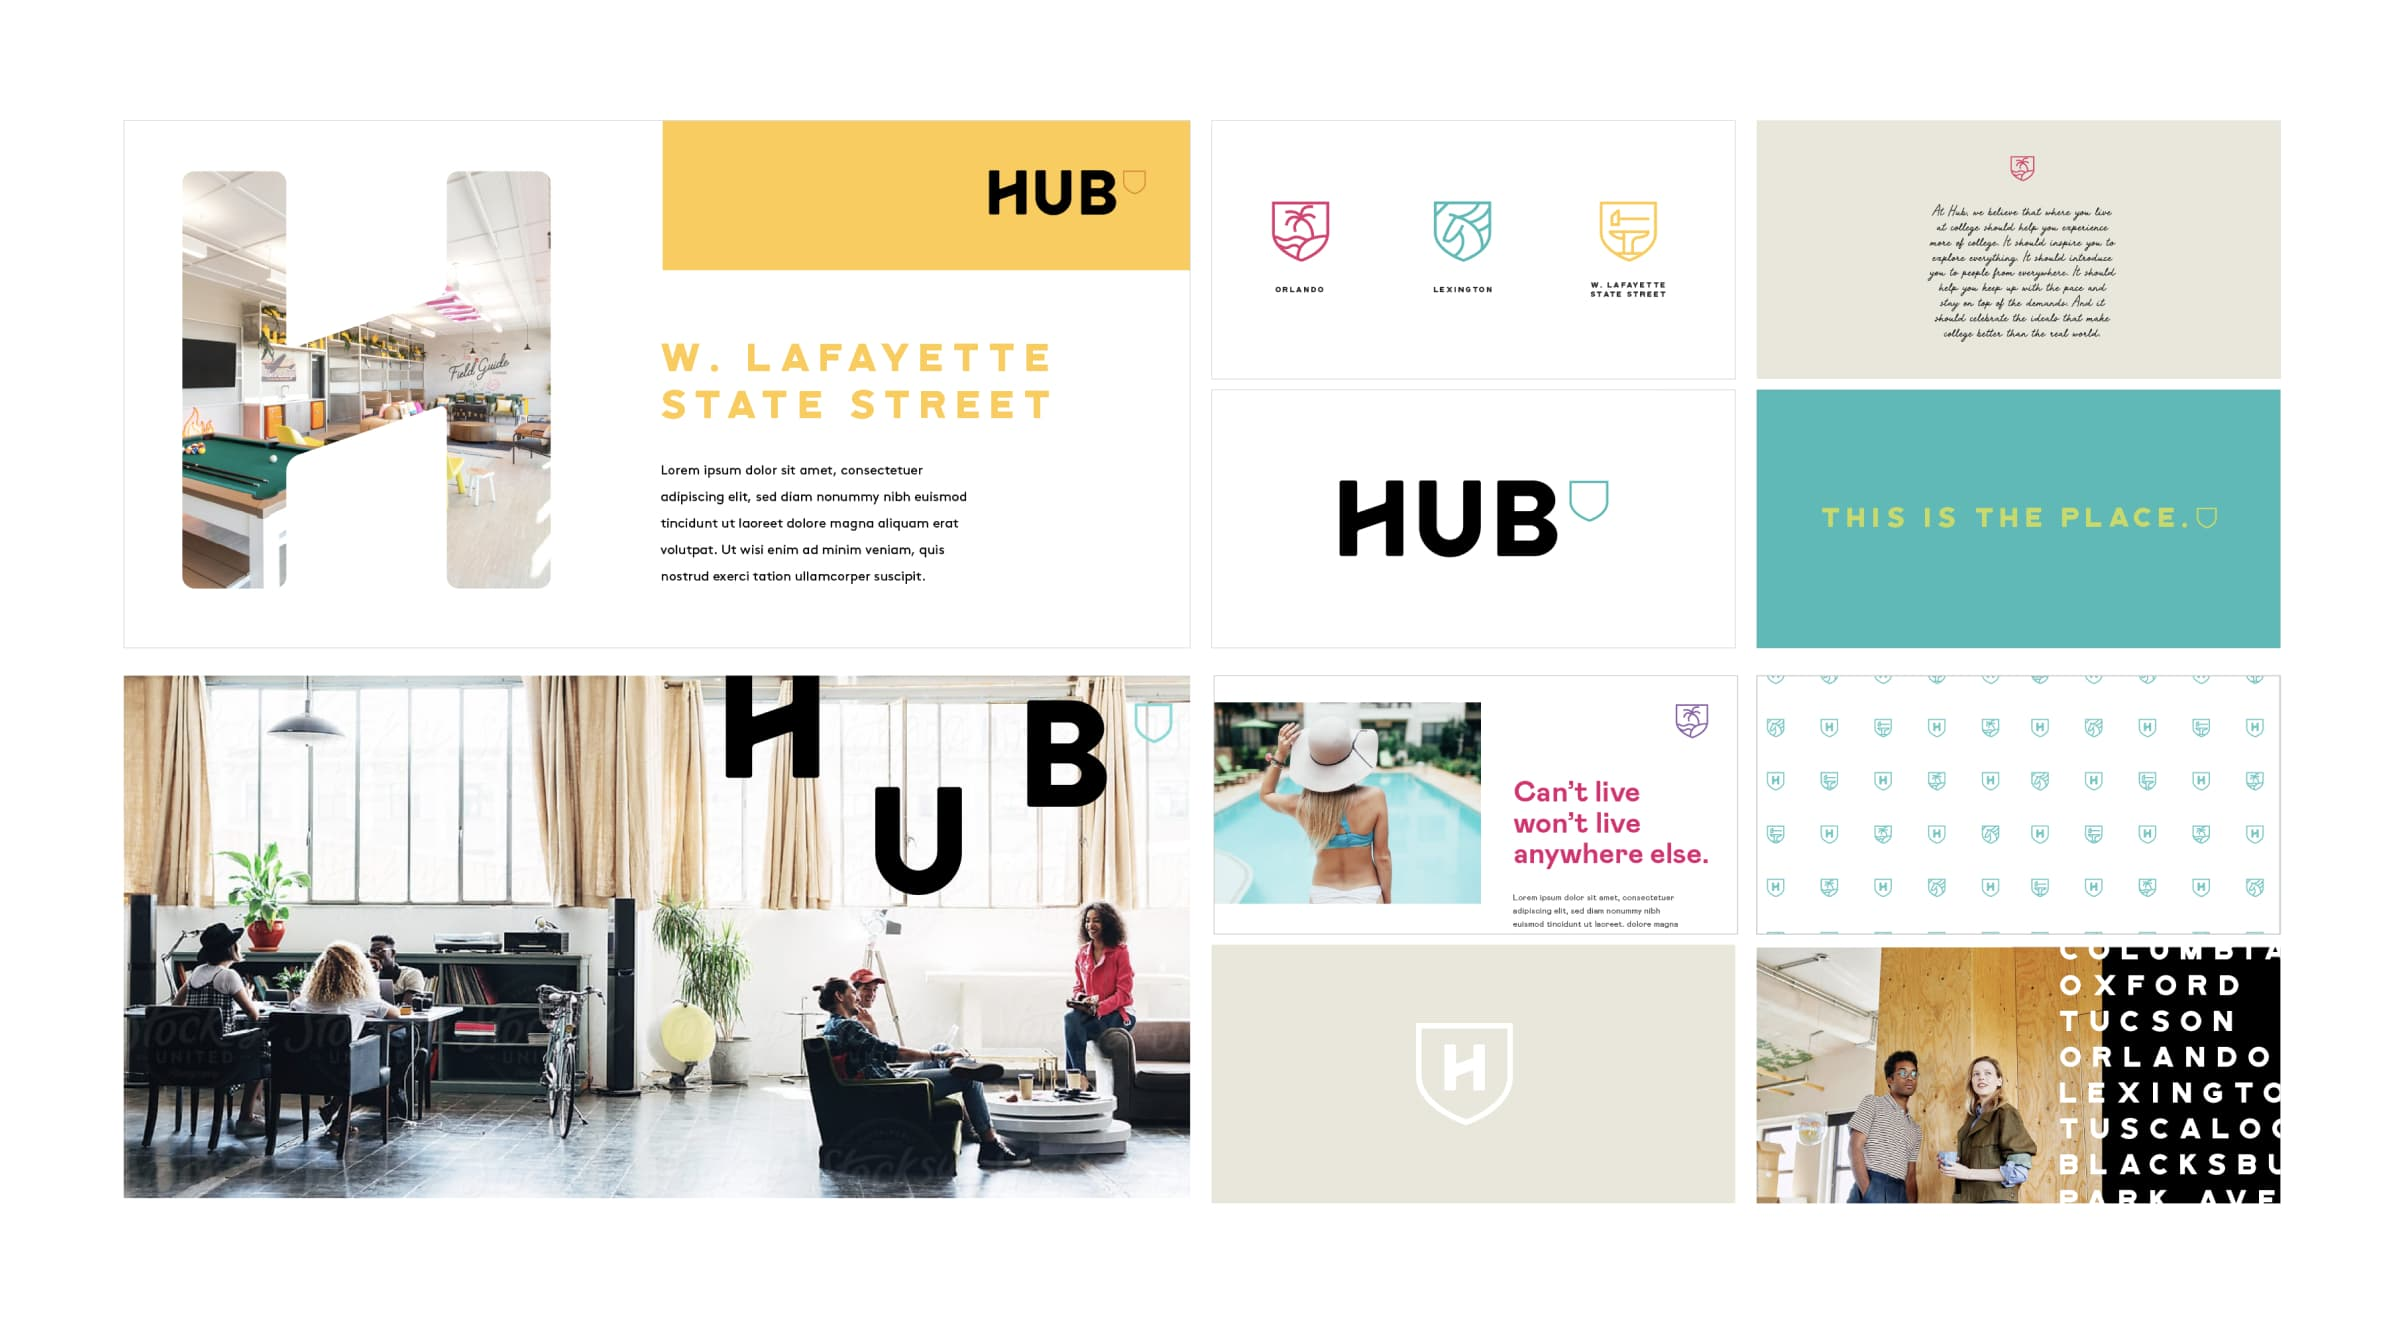 A moodboard showing a variety of brand design moments, including typography, lifestyle photography, iconography, and color palette.